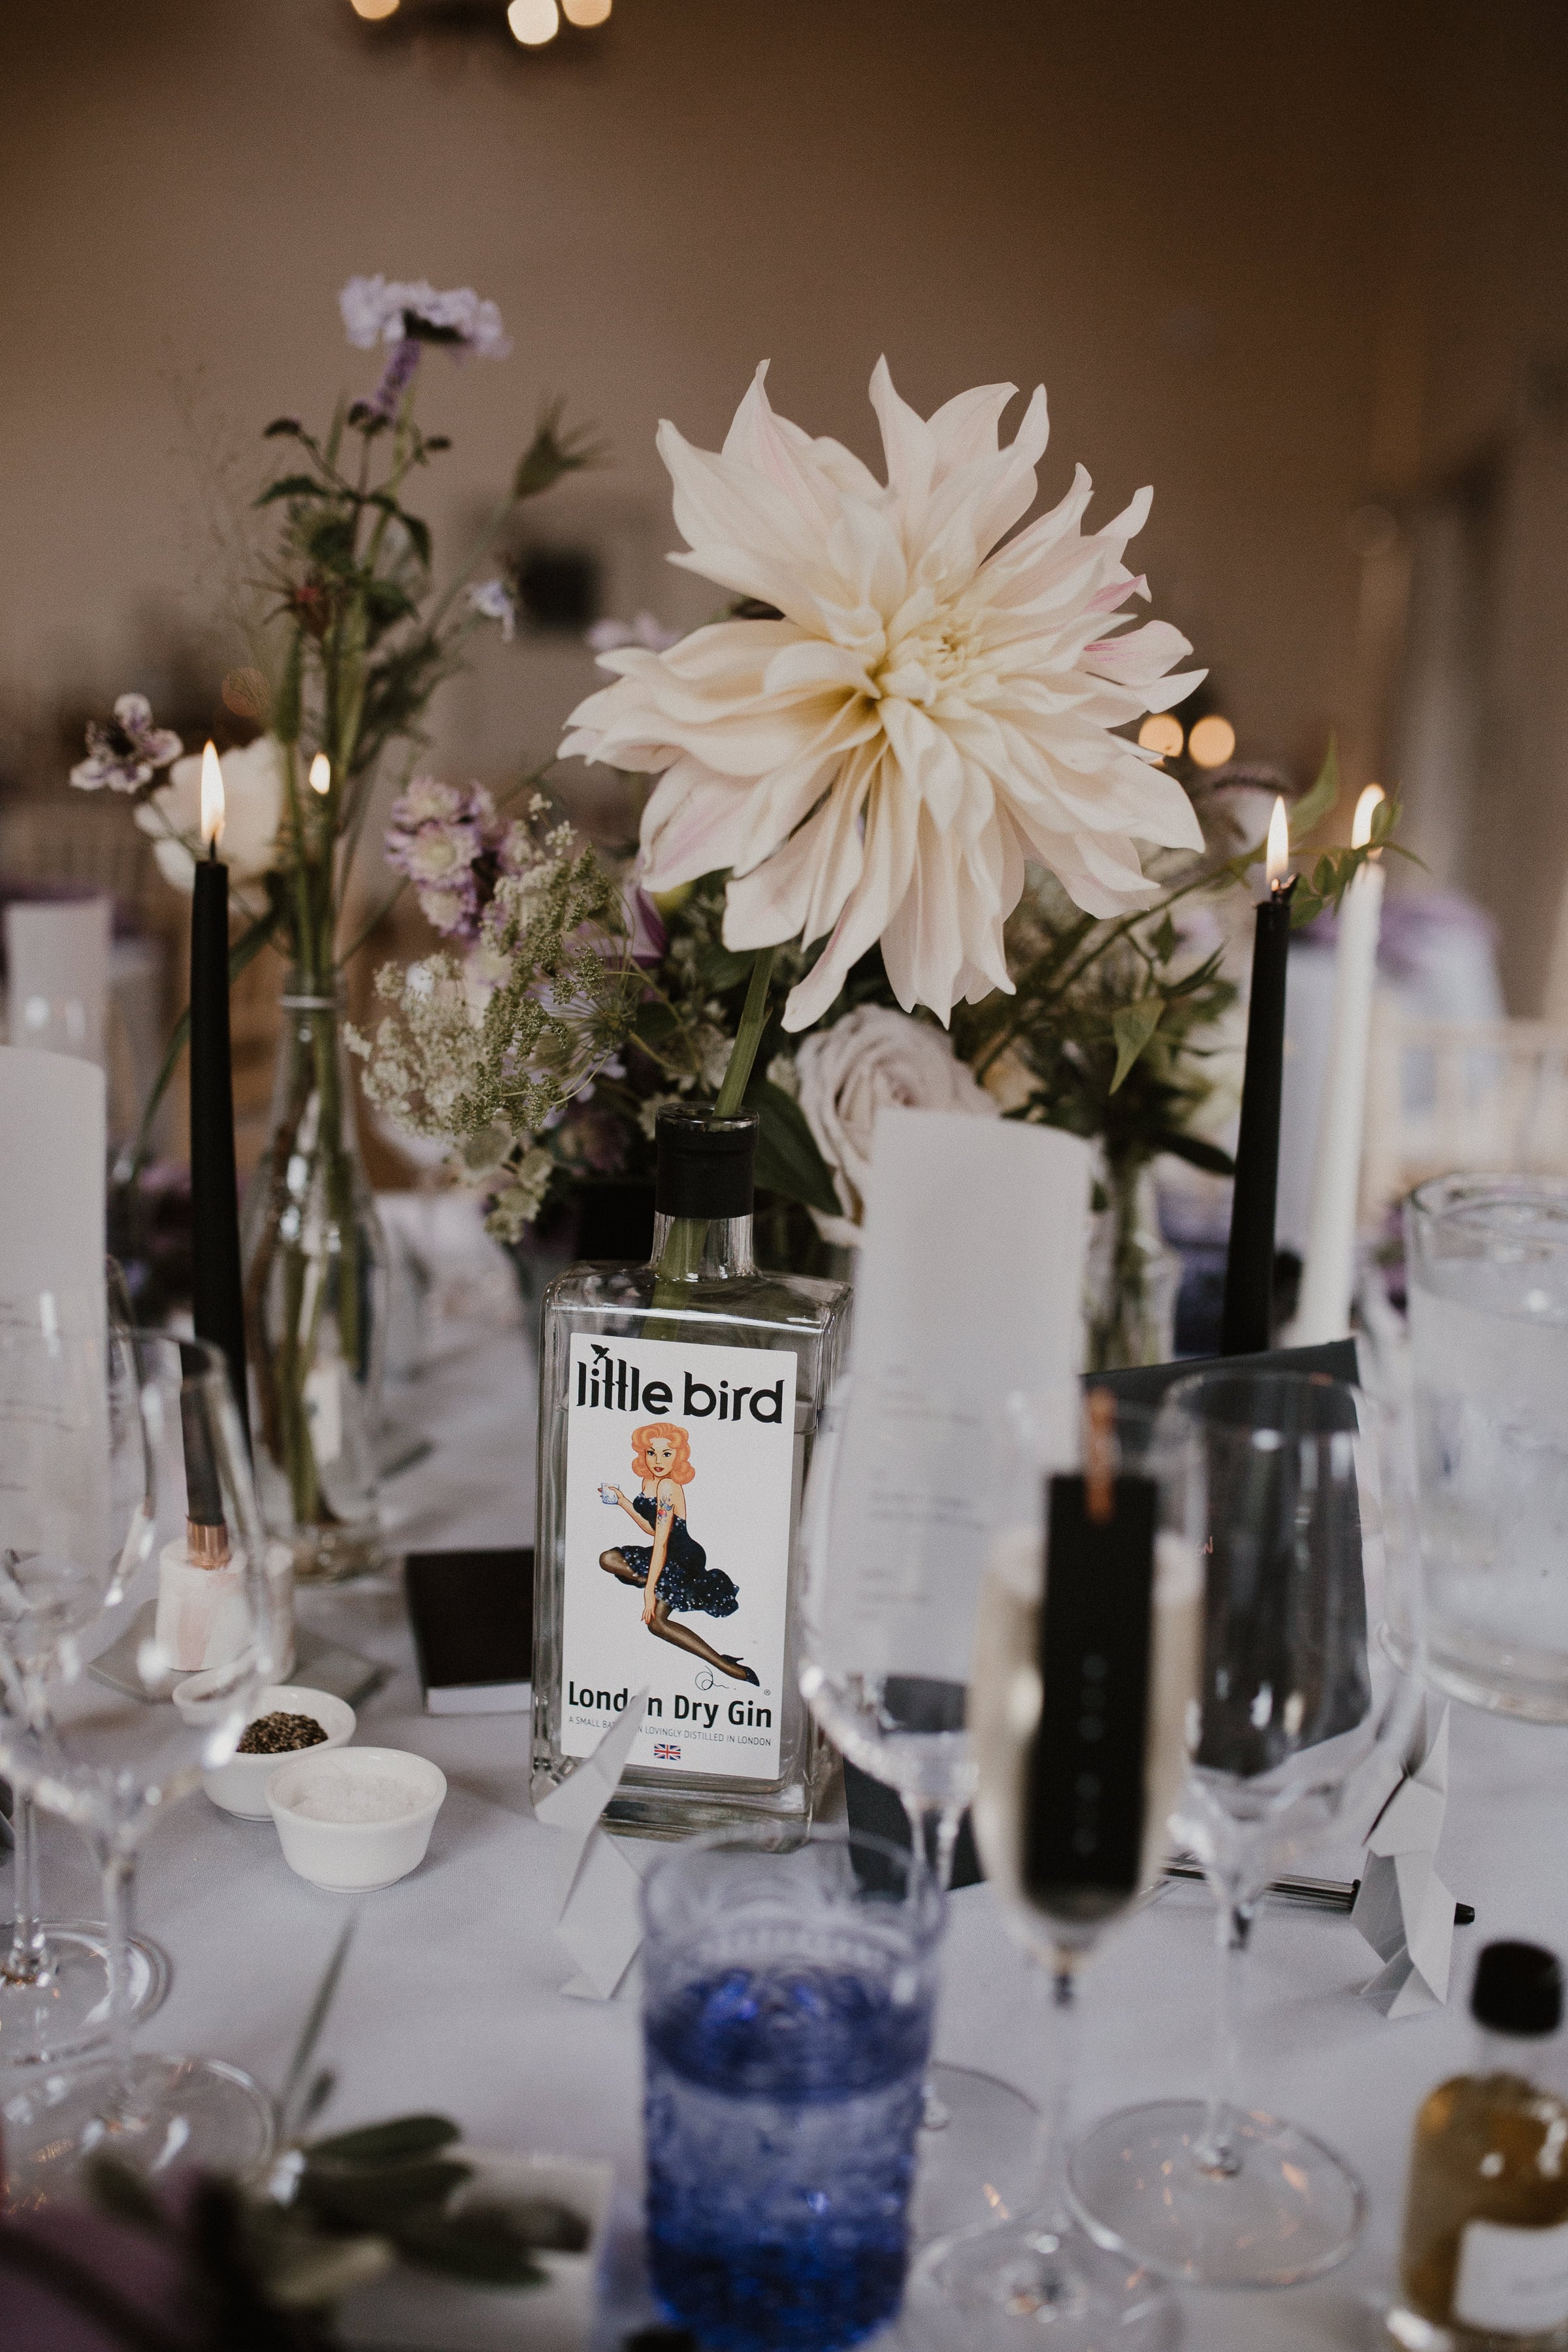 Nat and Tom - 01 - Venue and Details - Sara Lincoln Photography-85-min.jpg